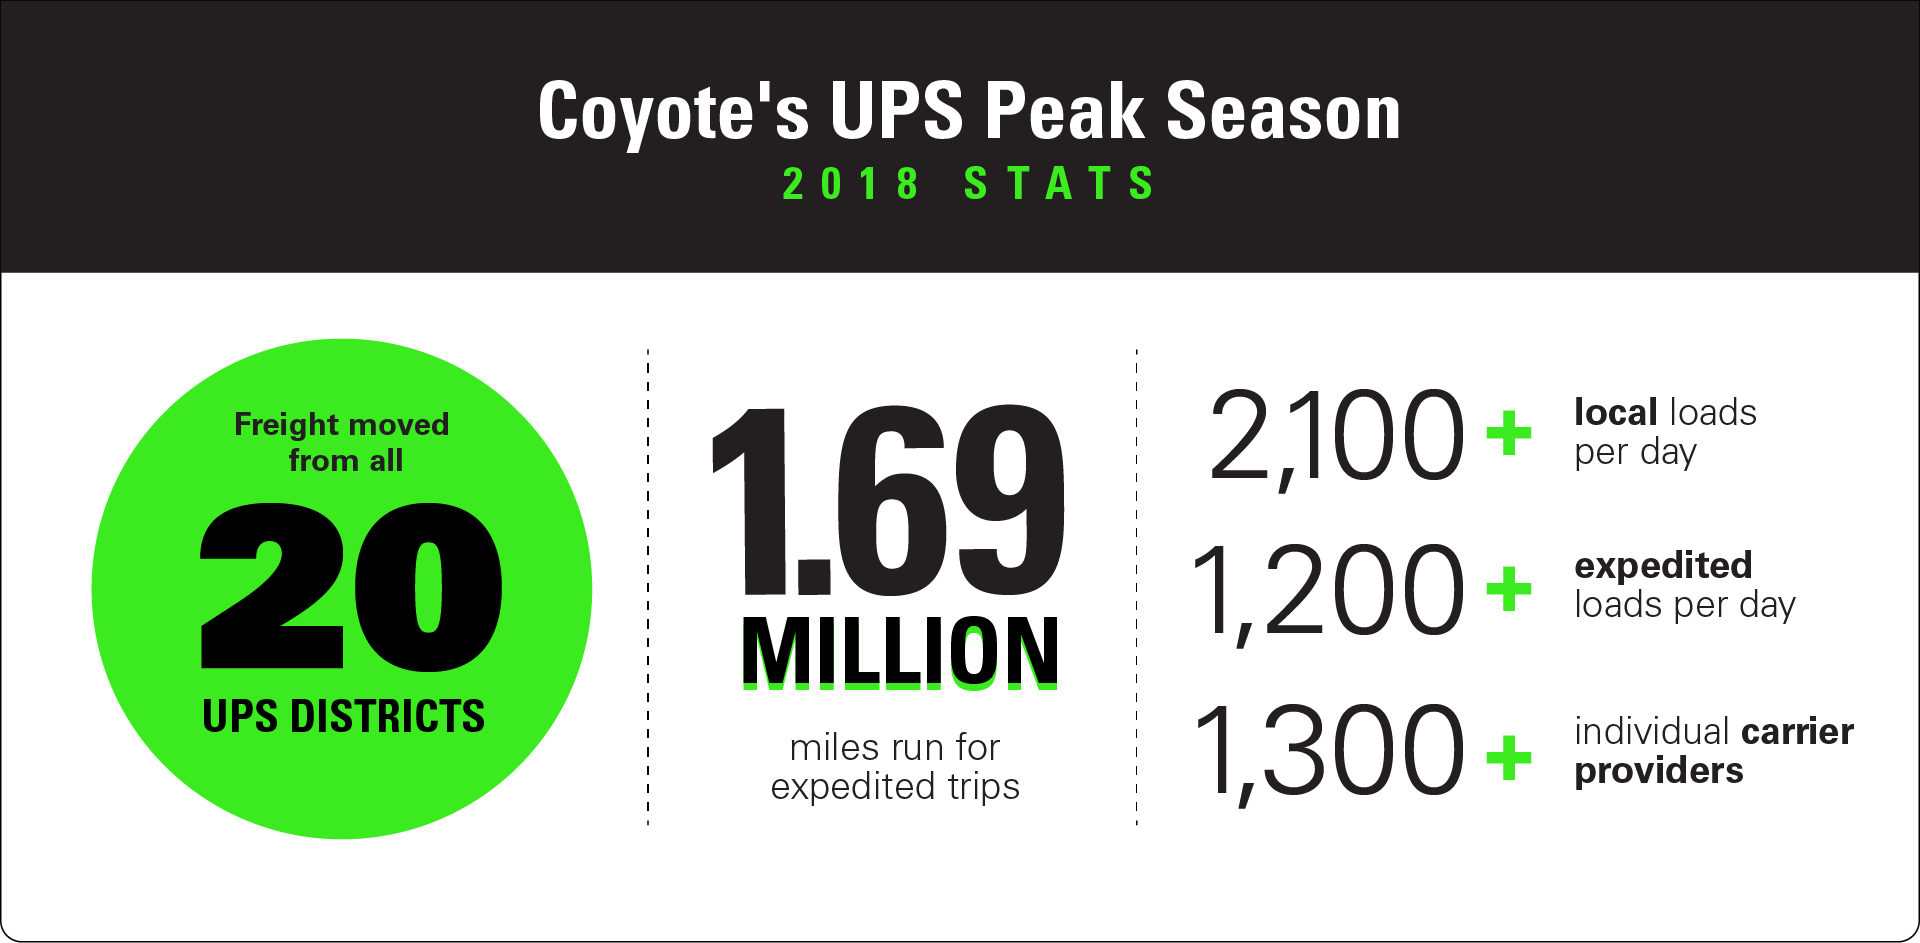 Coyote's UPS Peak Season 2018 Stats graphic